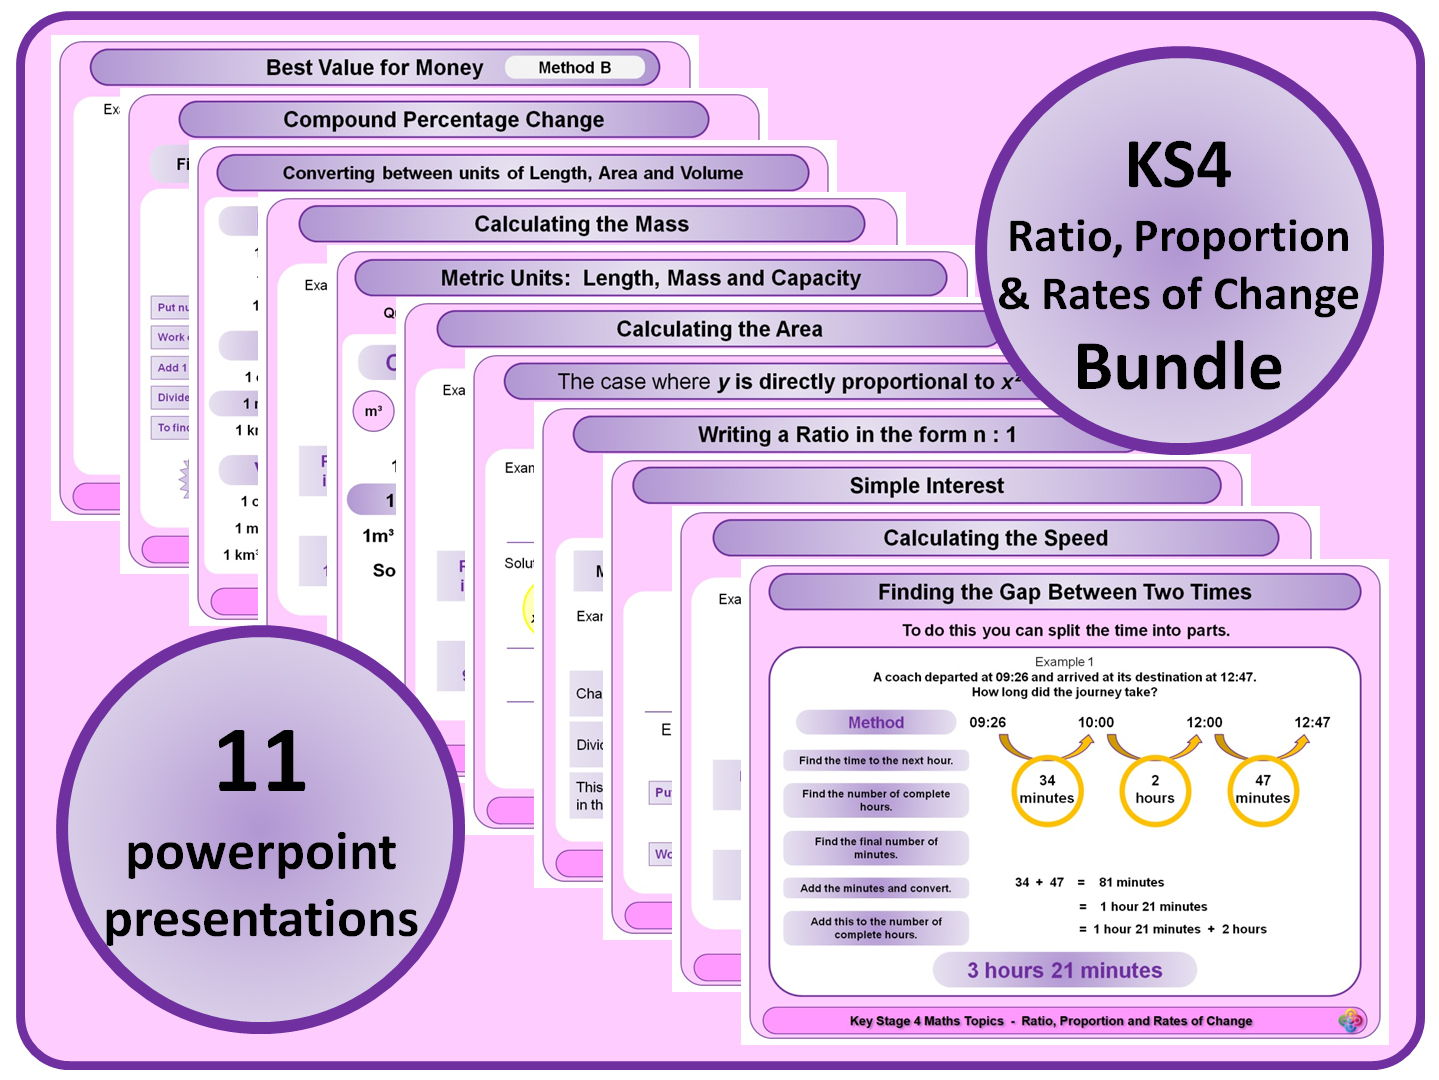 KS4 Ratio, Proportion & Rates of Change BUNDLE